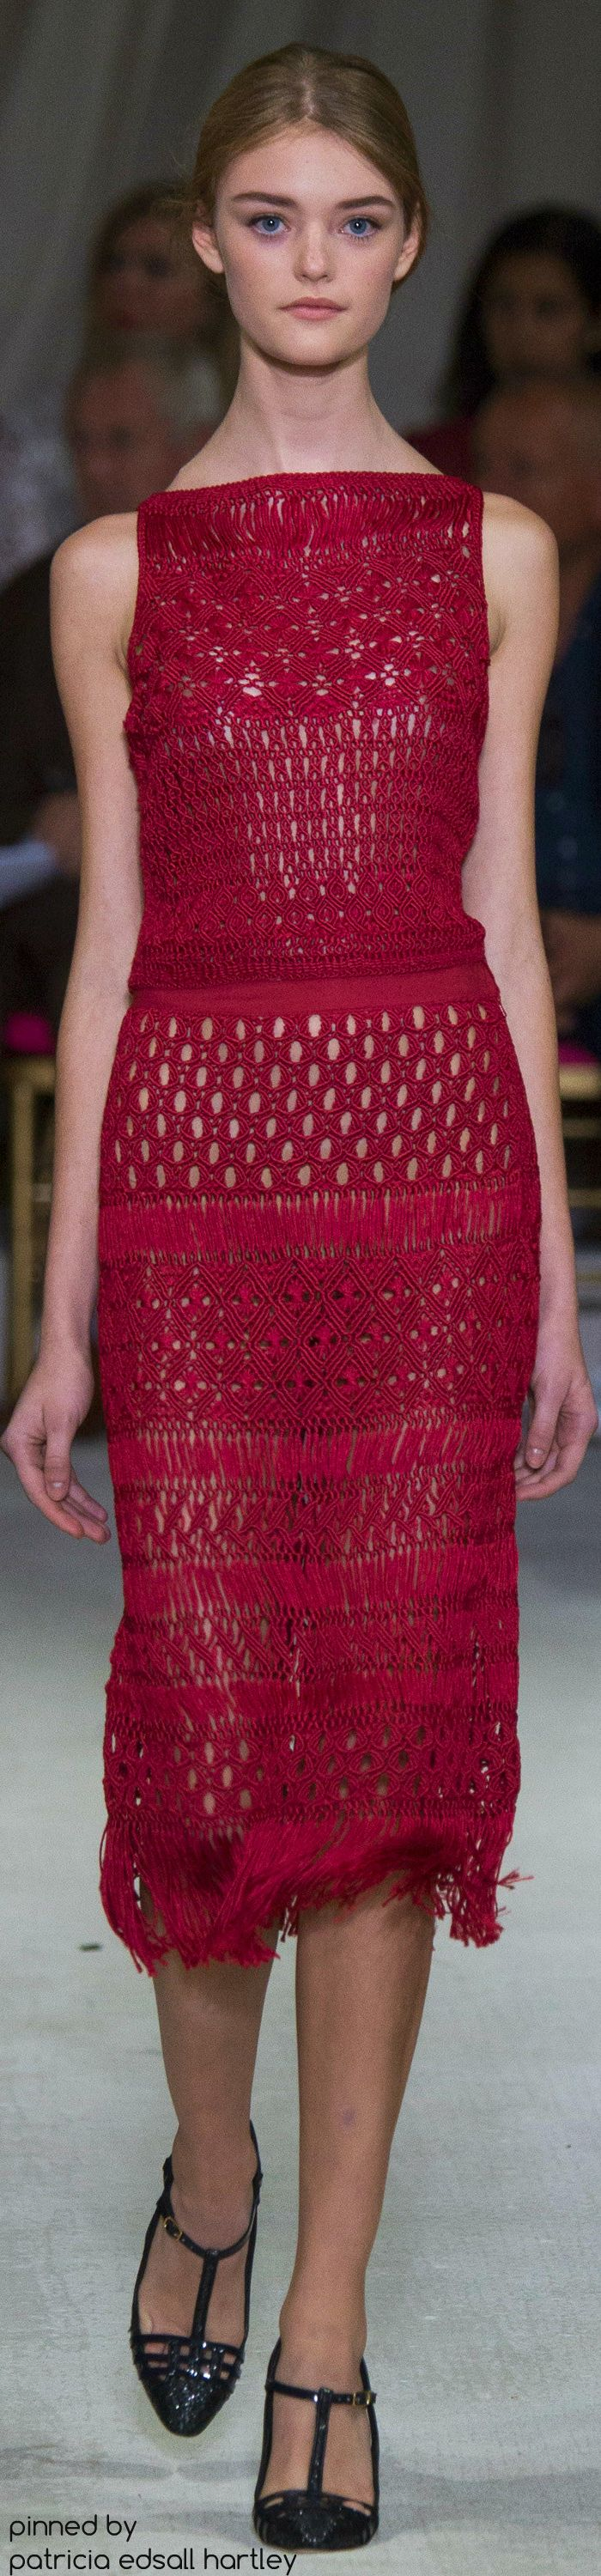 SPRING 2016 READY-TO-WEAR Oscar de la Renta